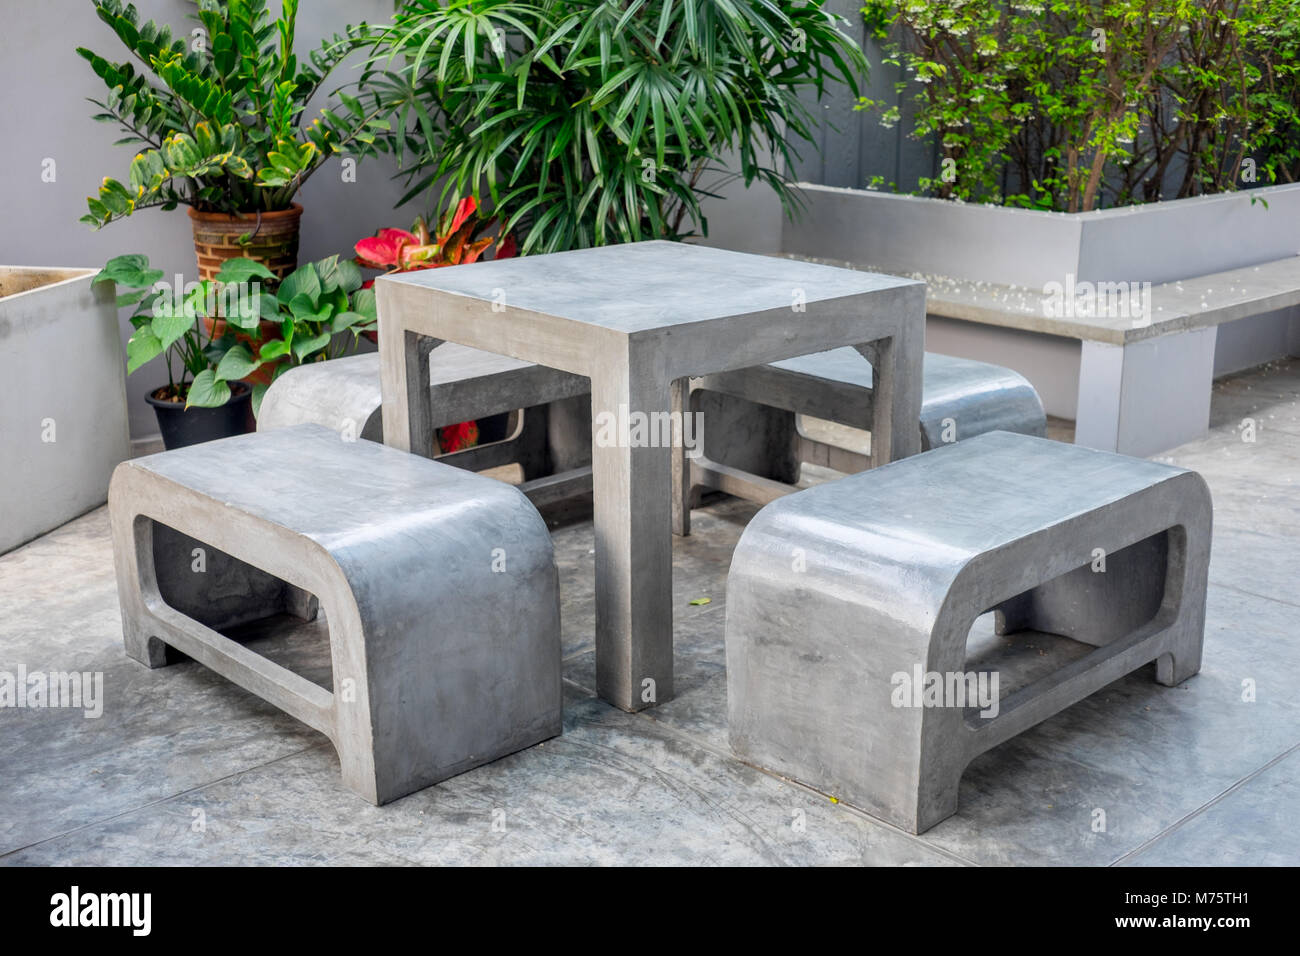 Concrete outdoor furniture set in the small garden including on table and four benches & Concrete outdoor furniture set in the small garden including on ...